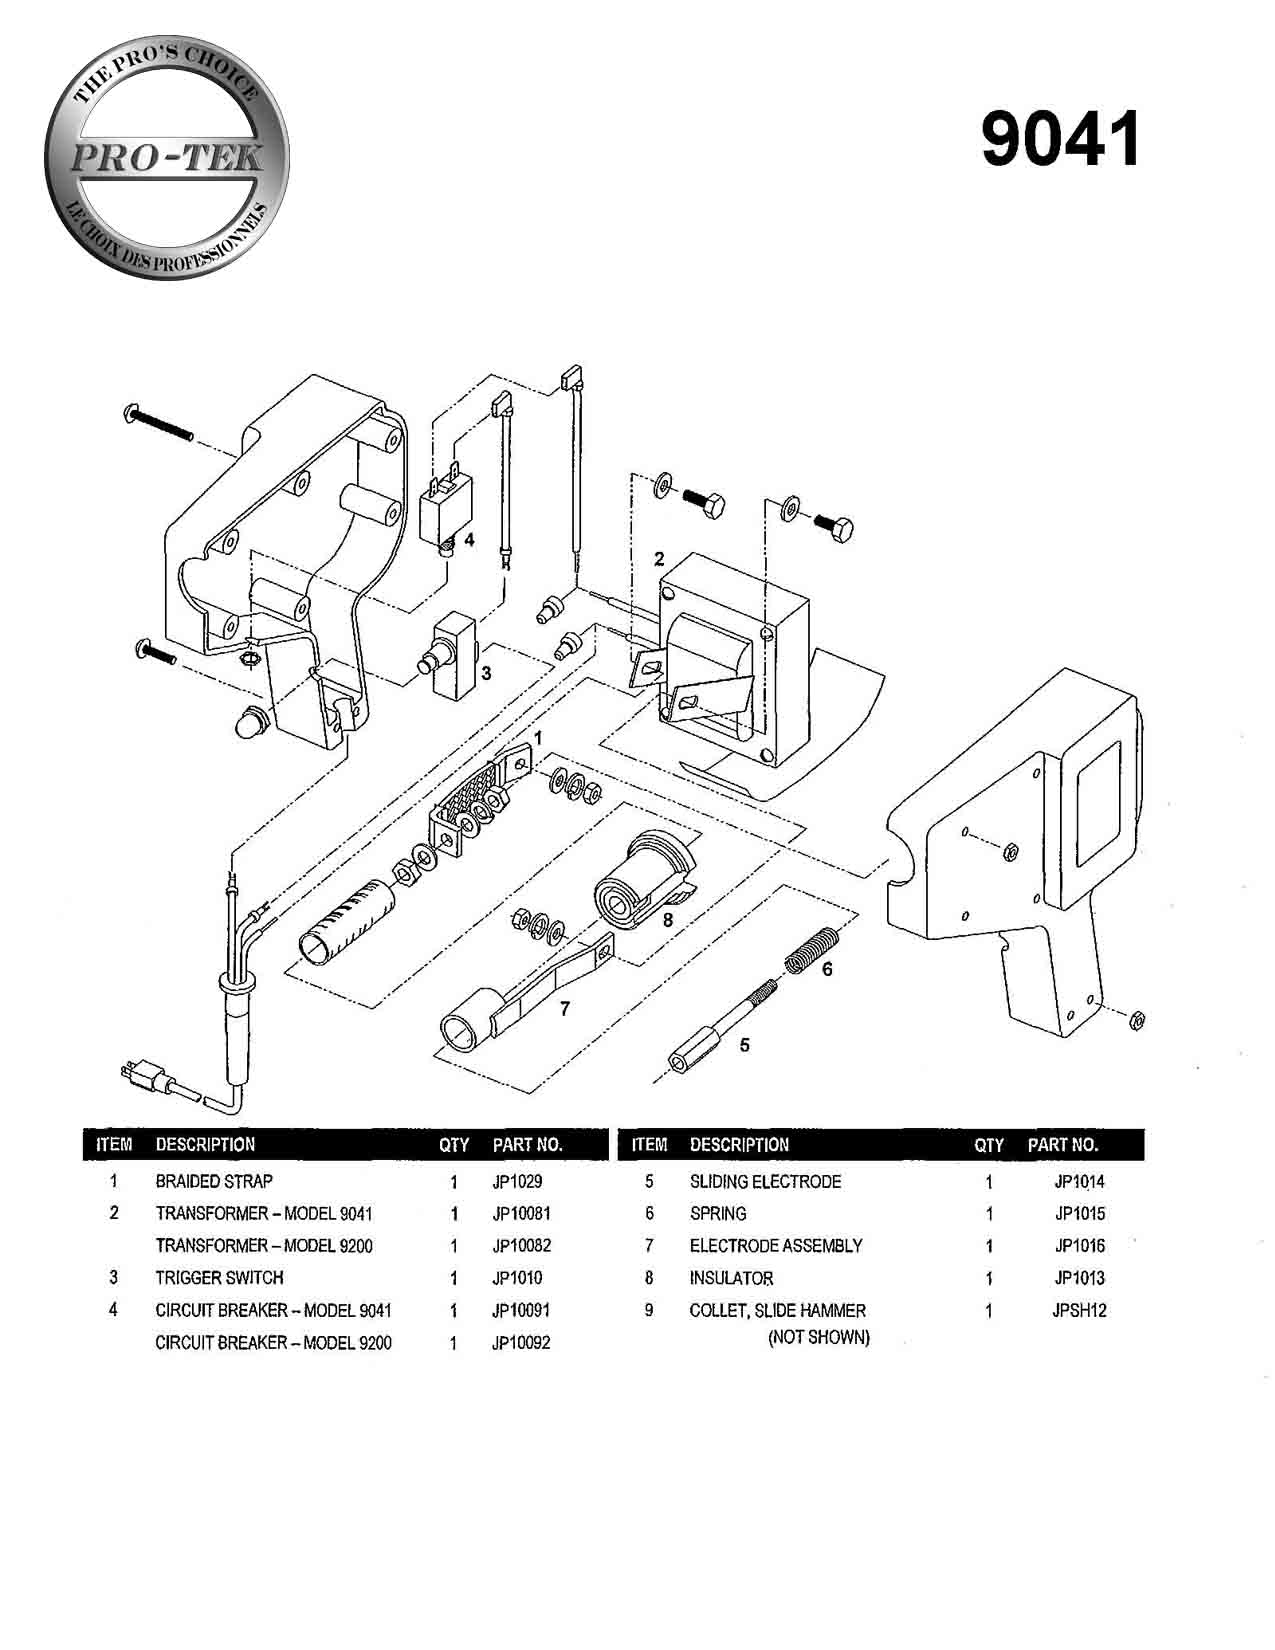 Pro Spot Stud Welding Set Diagram Of Transformer Click Here For The Break Down This Item